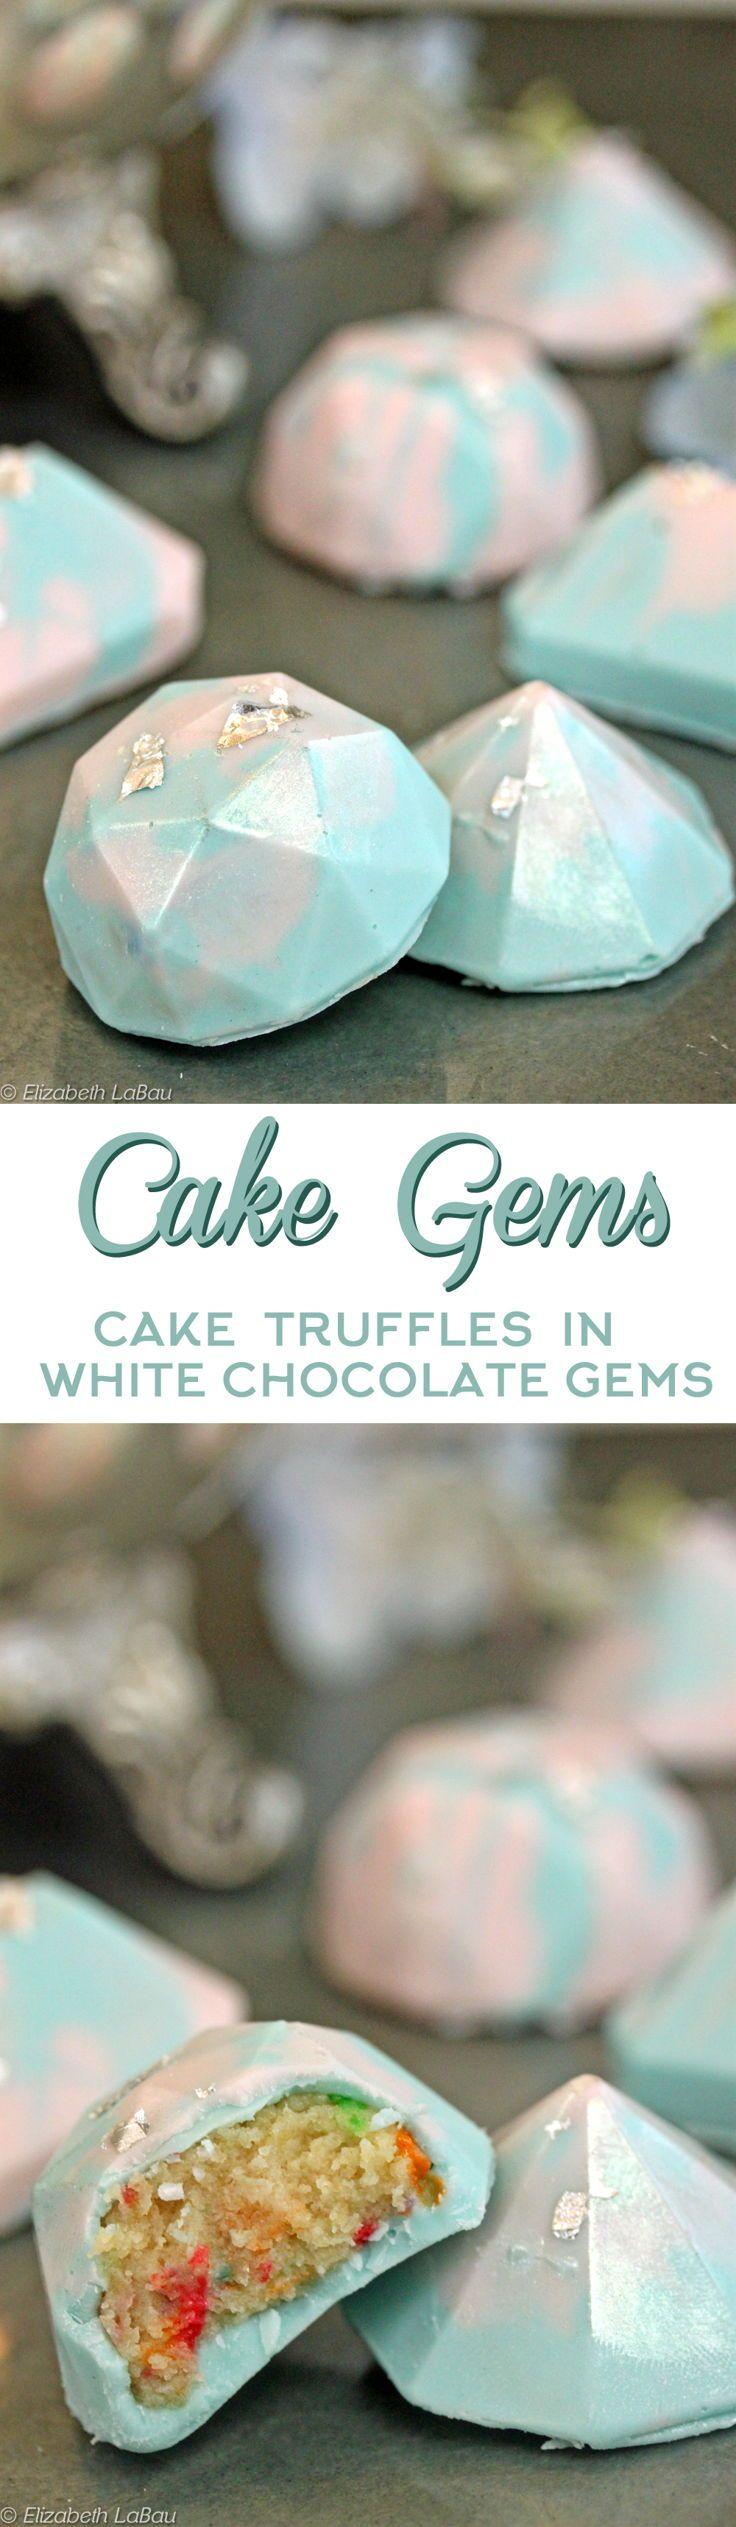 Cake Gems - the latest trend in cake truffles! Learn how to make these gorgeous gem-shaped candies, filled with cake! | From candy.about.com